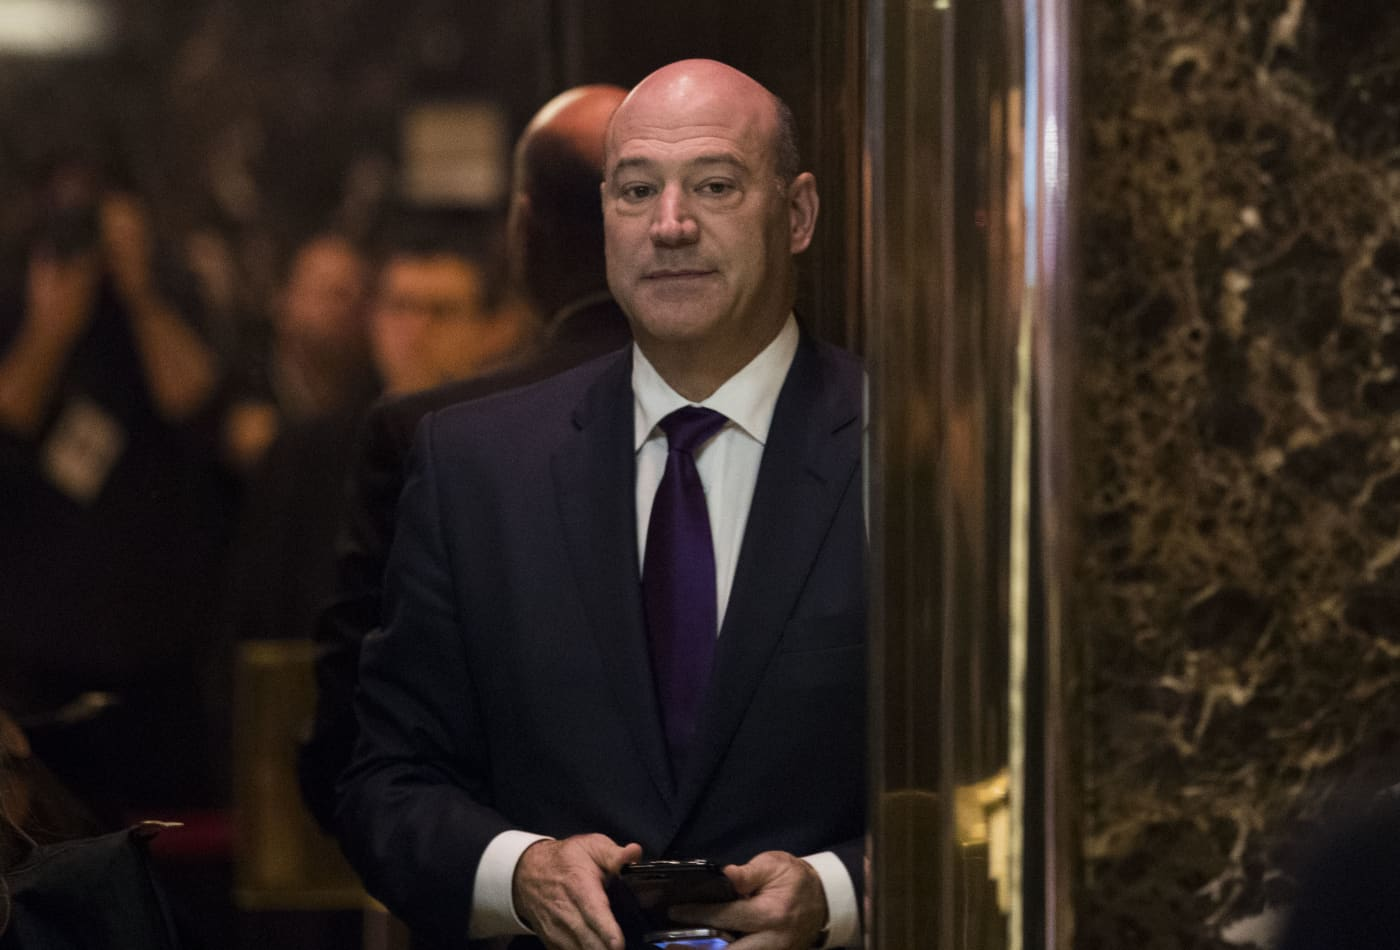 Gary Cohn says Trump's tariffs 'totally hurt the United States' and 'collided' with the tax cut